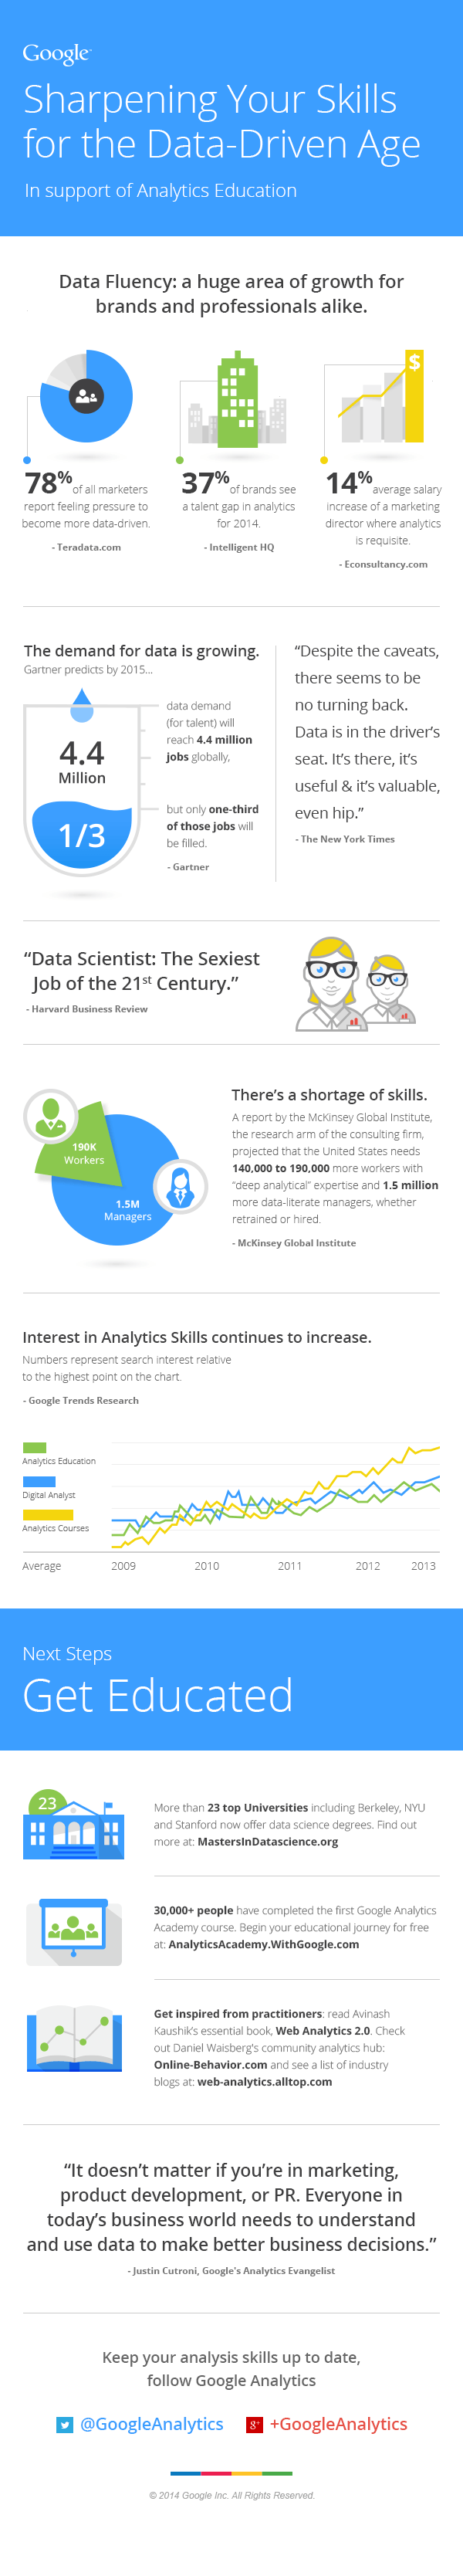 Google Analytics Education Infographic - 2014